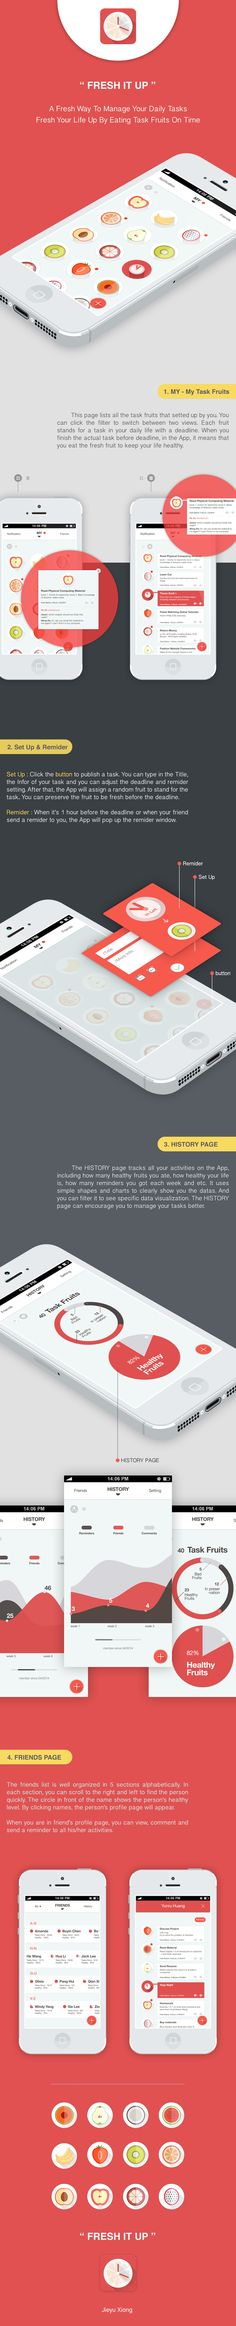 """Fresh It Up"" - App Design by Jieyu Xiong, via Behance"